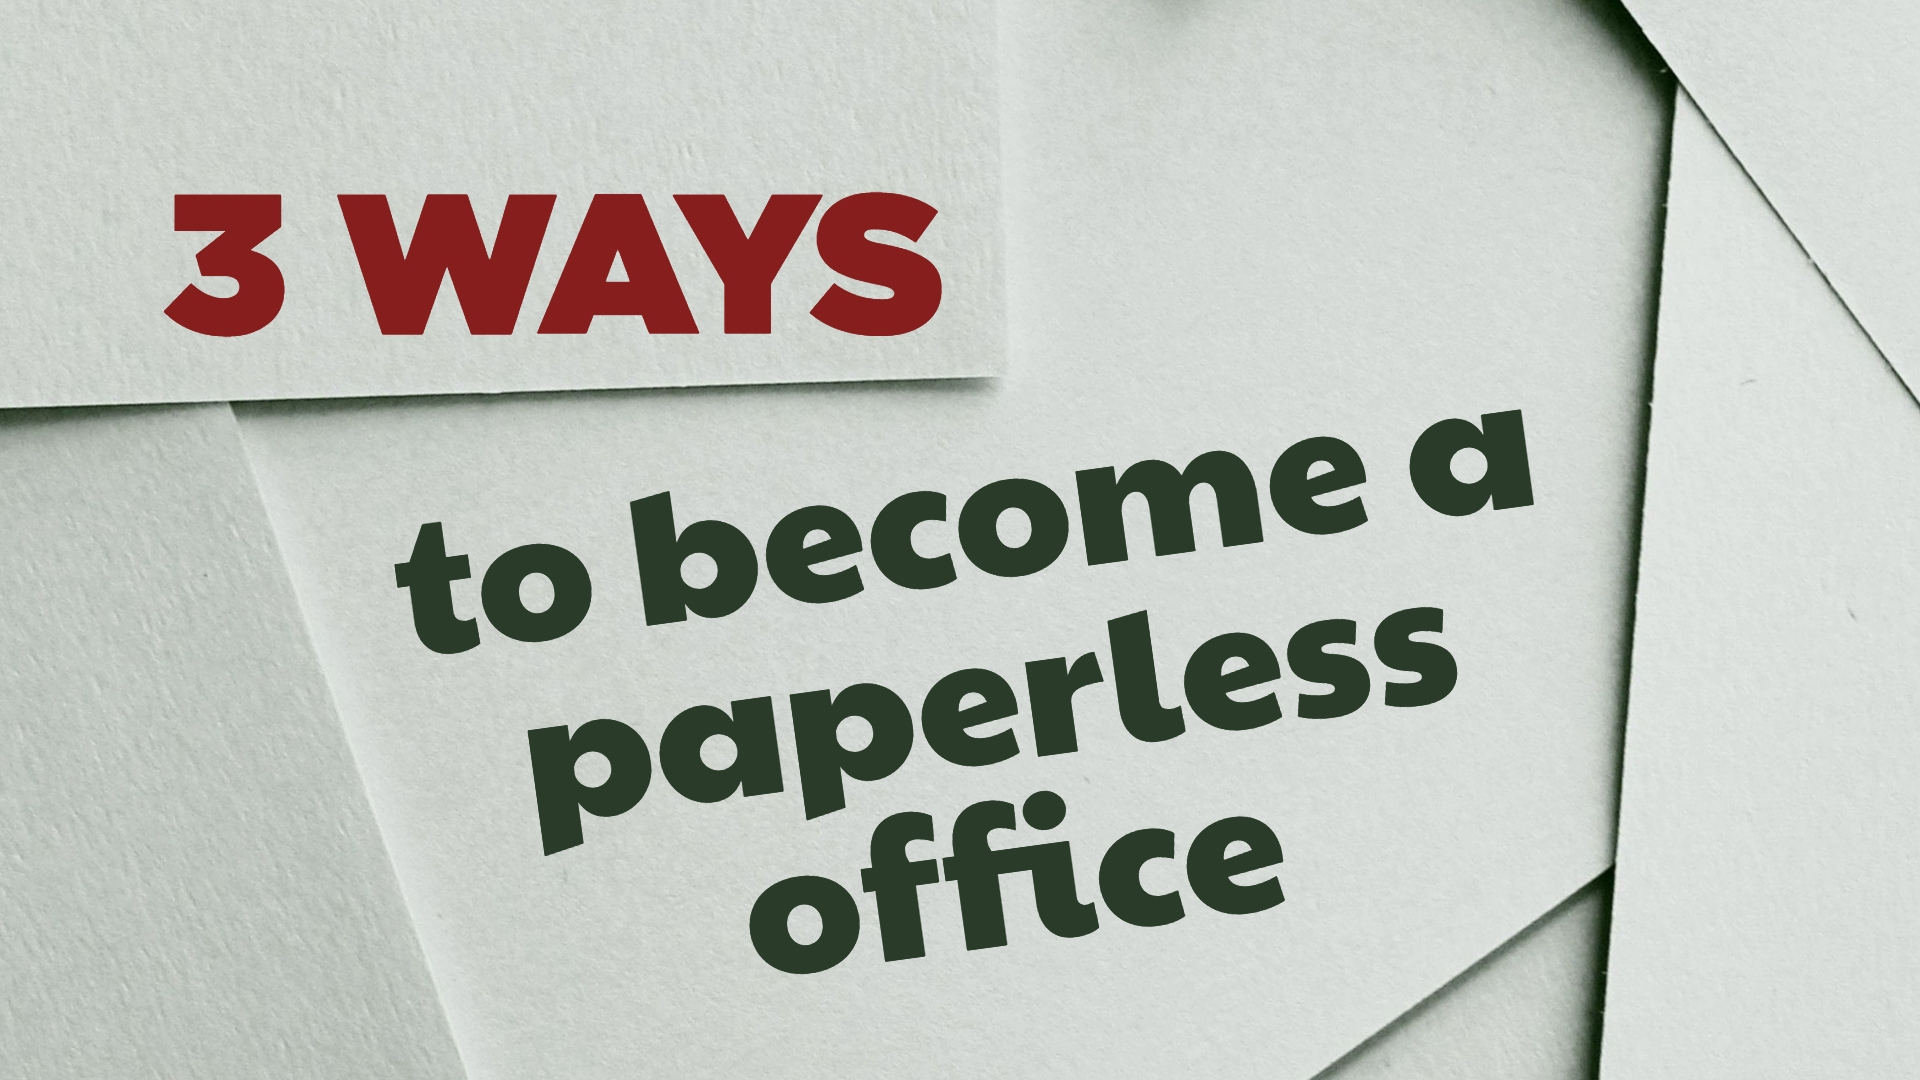 Go Paperless, IT support. Computer services